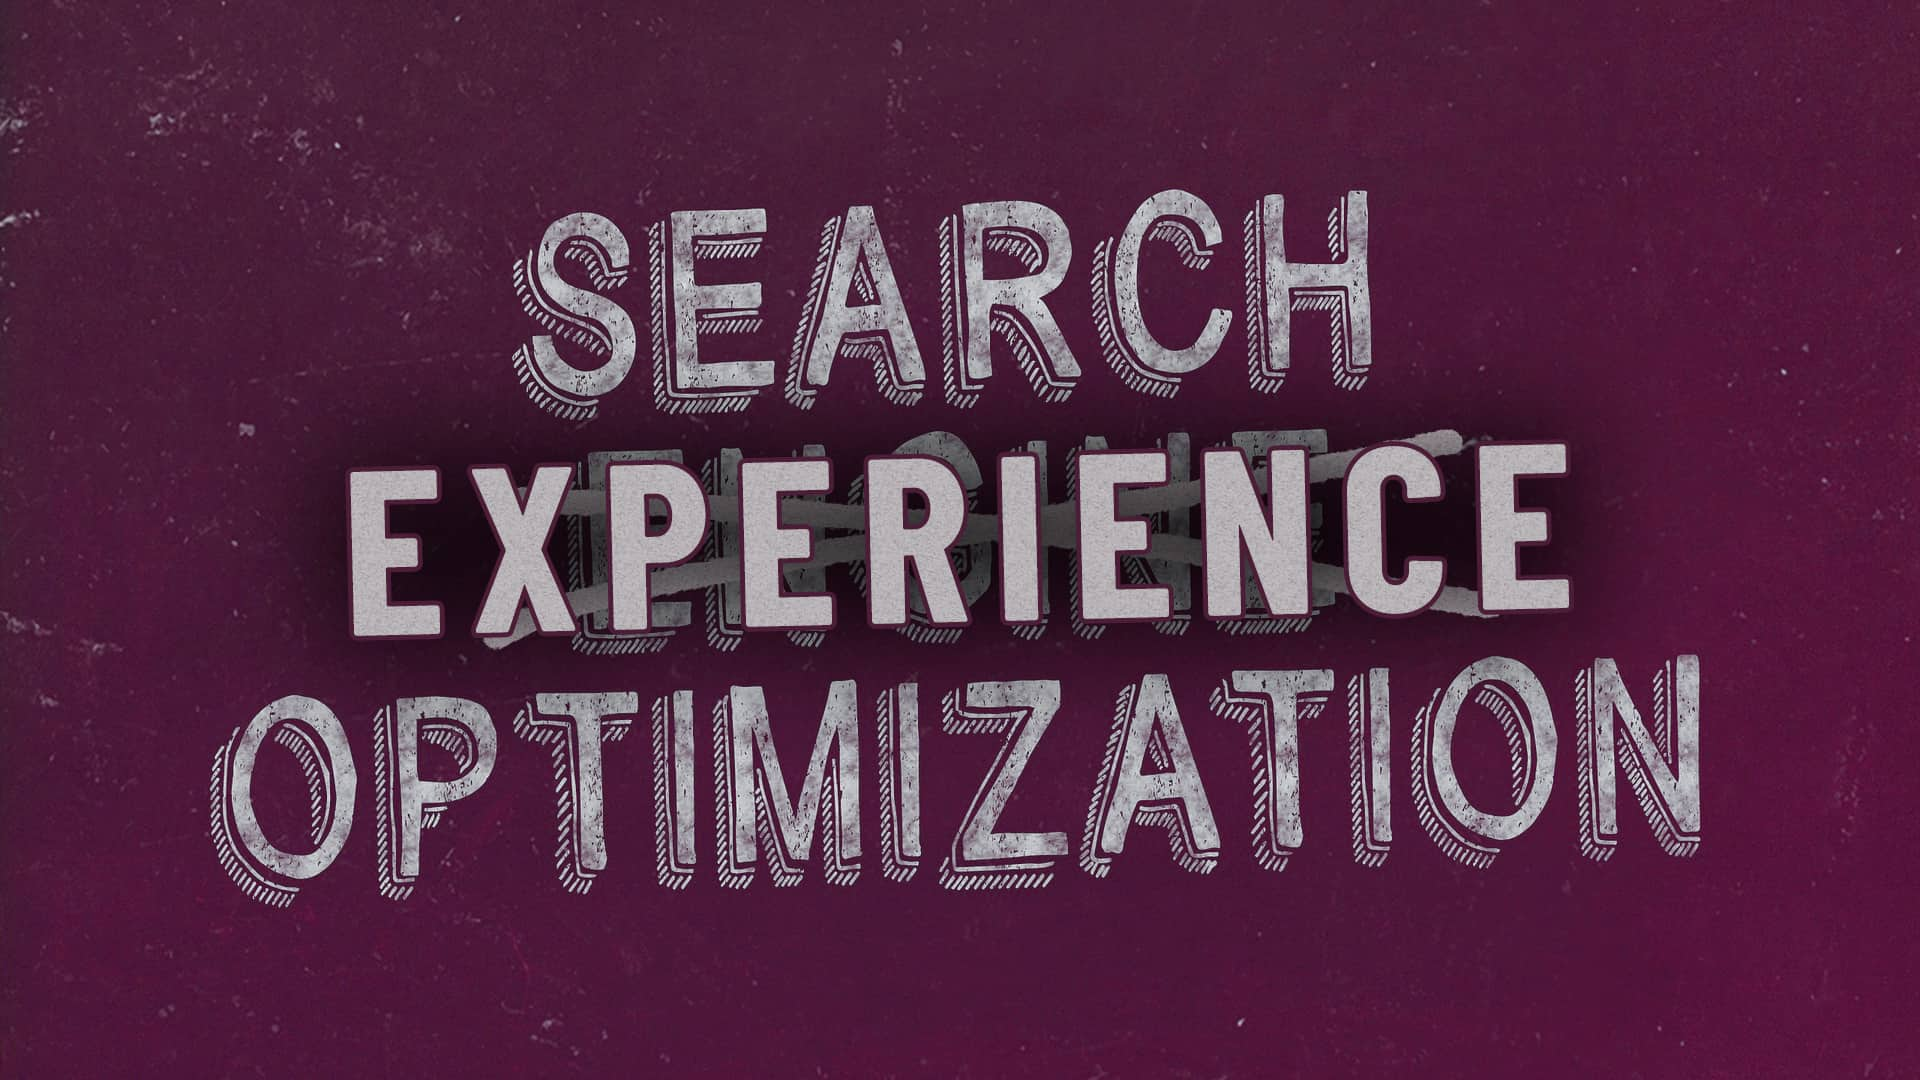 Search Experience Optimization statt Search Engine Optimization